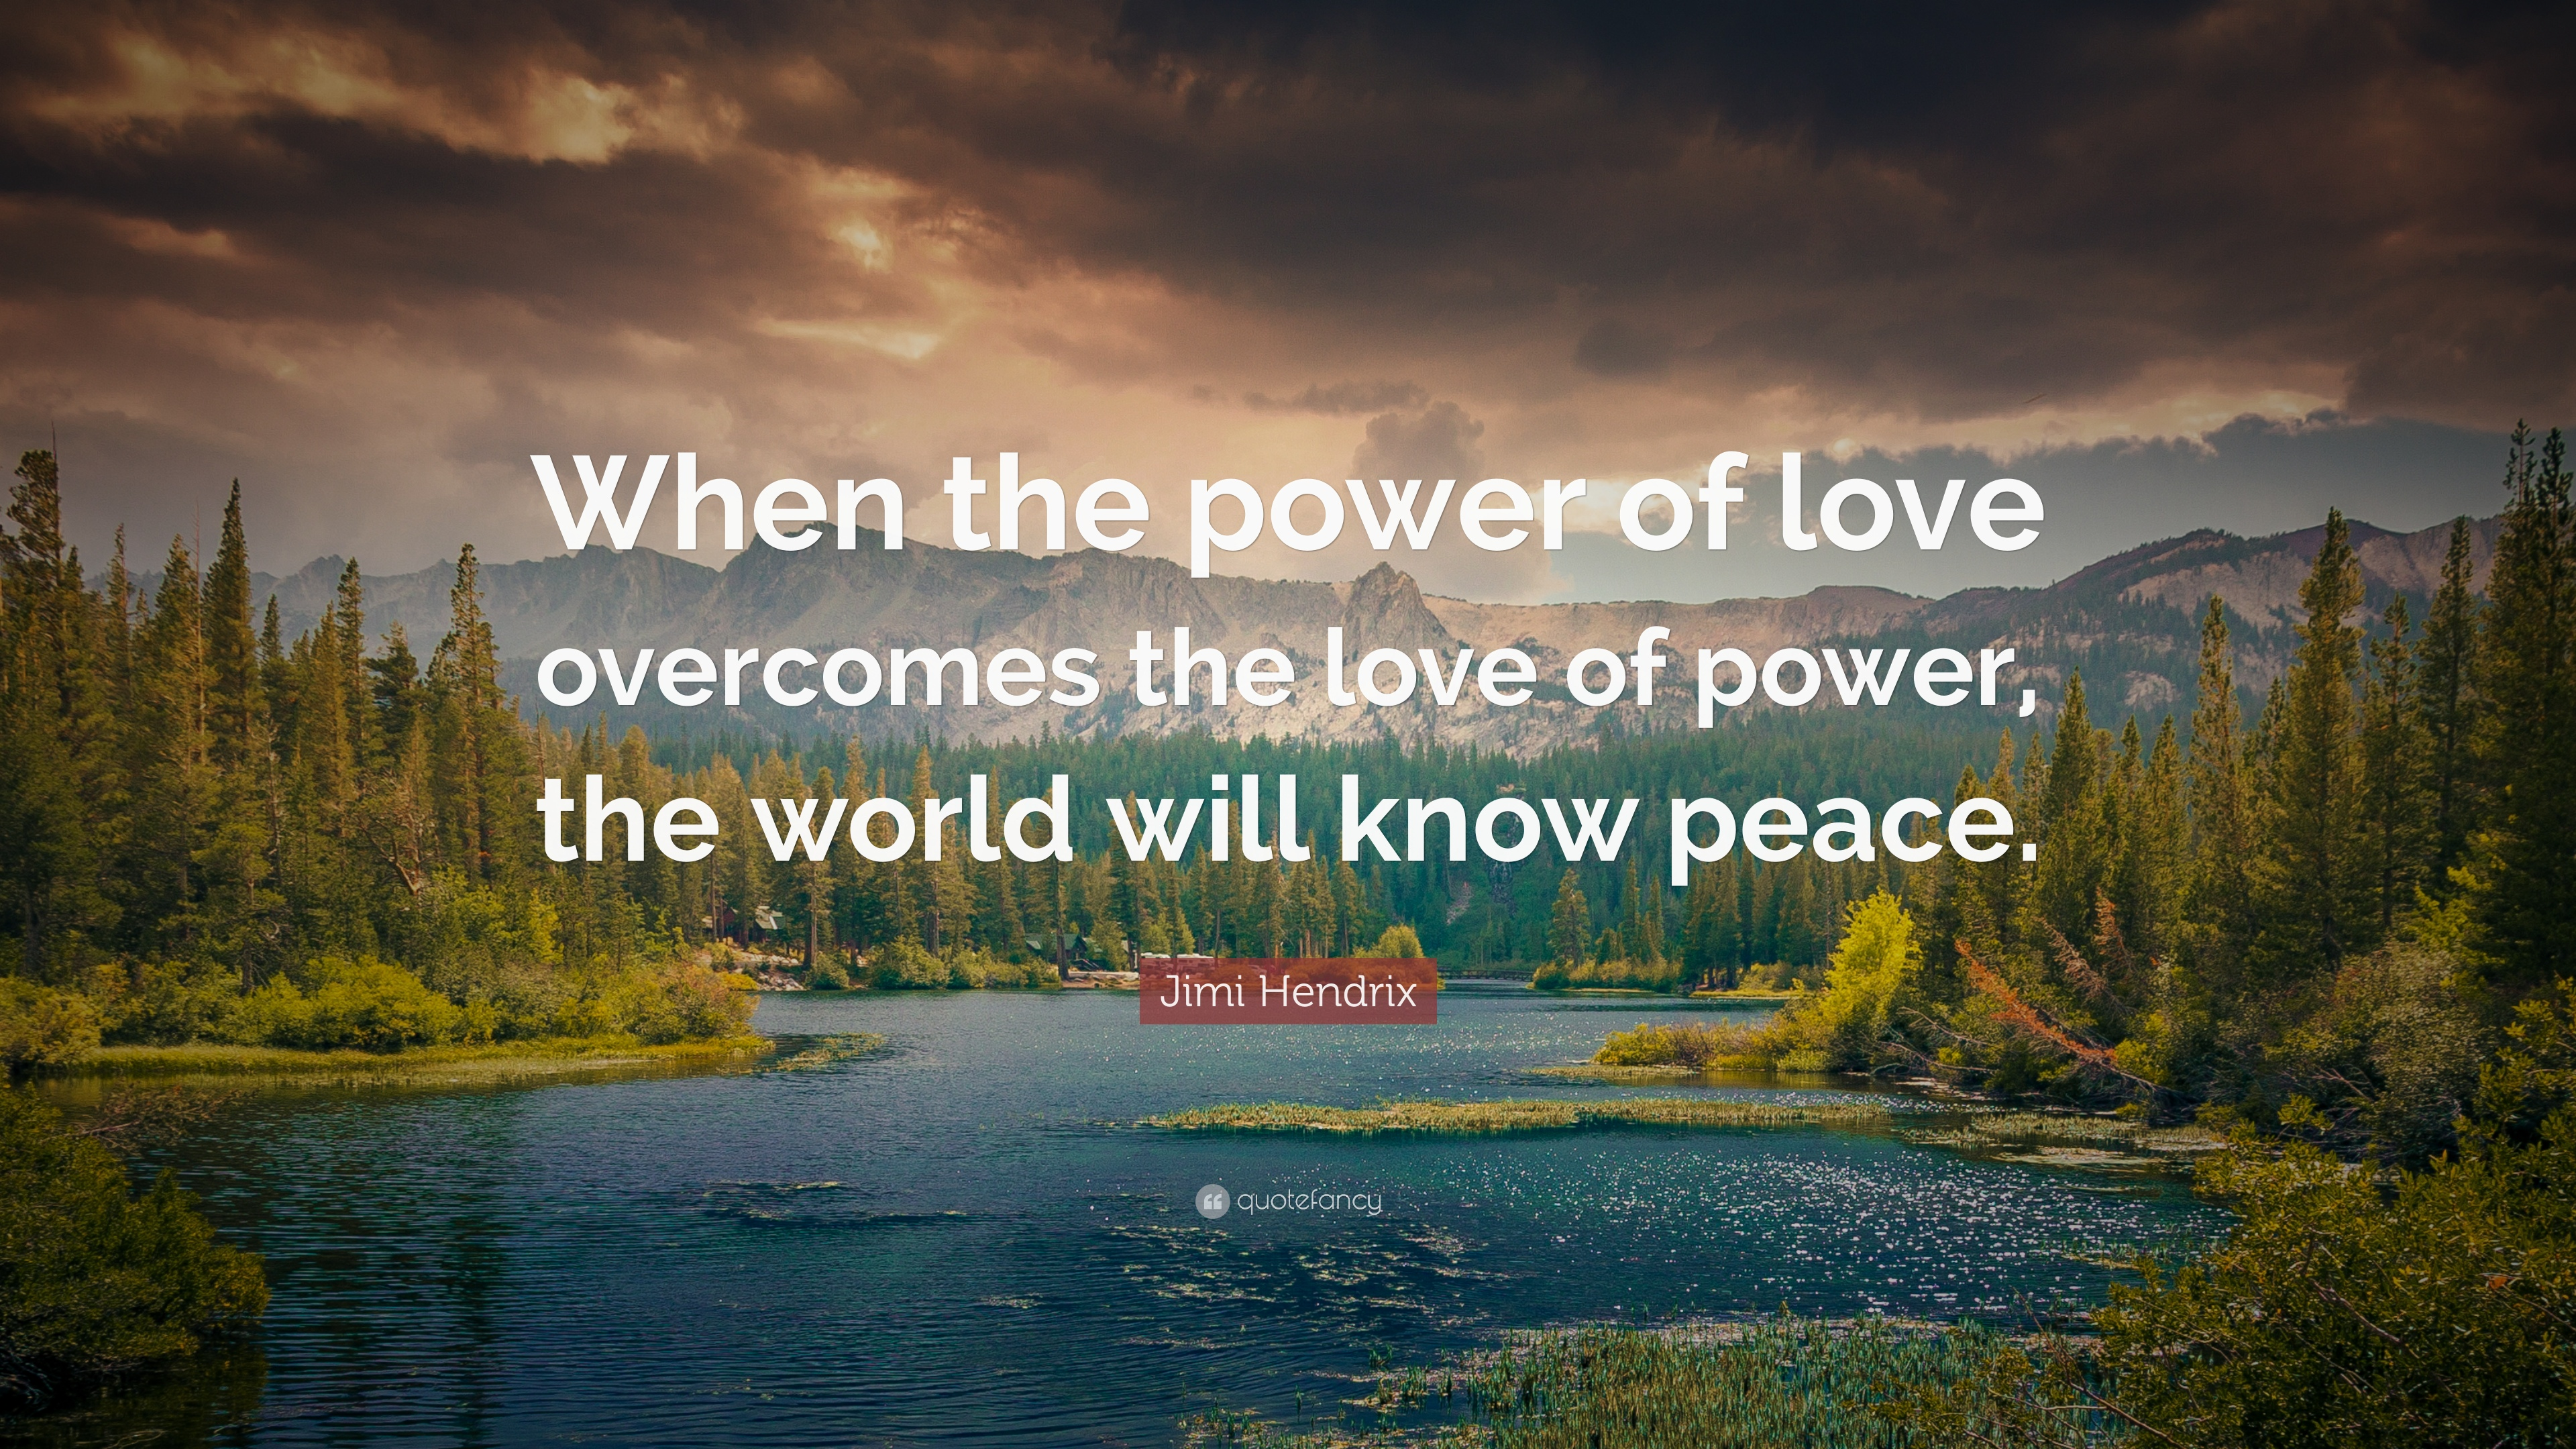 Jimi Hendrix Quote When The Power Of Love Overcomes The Love Of